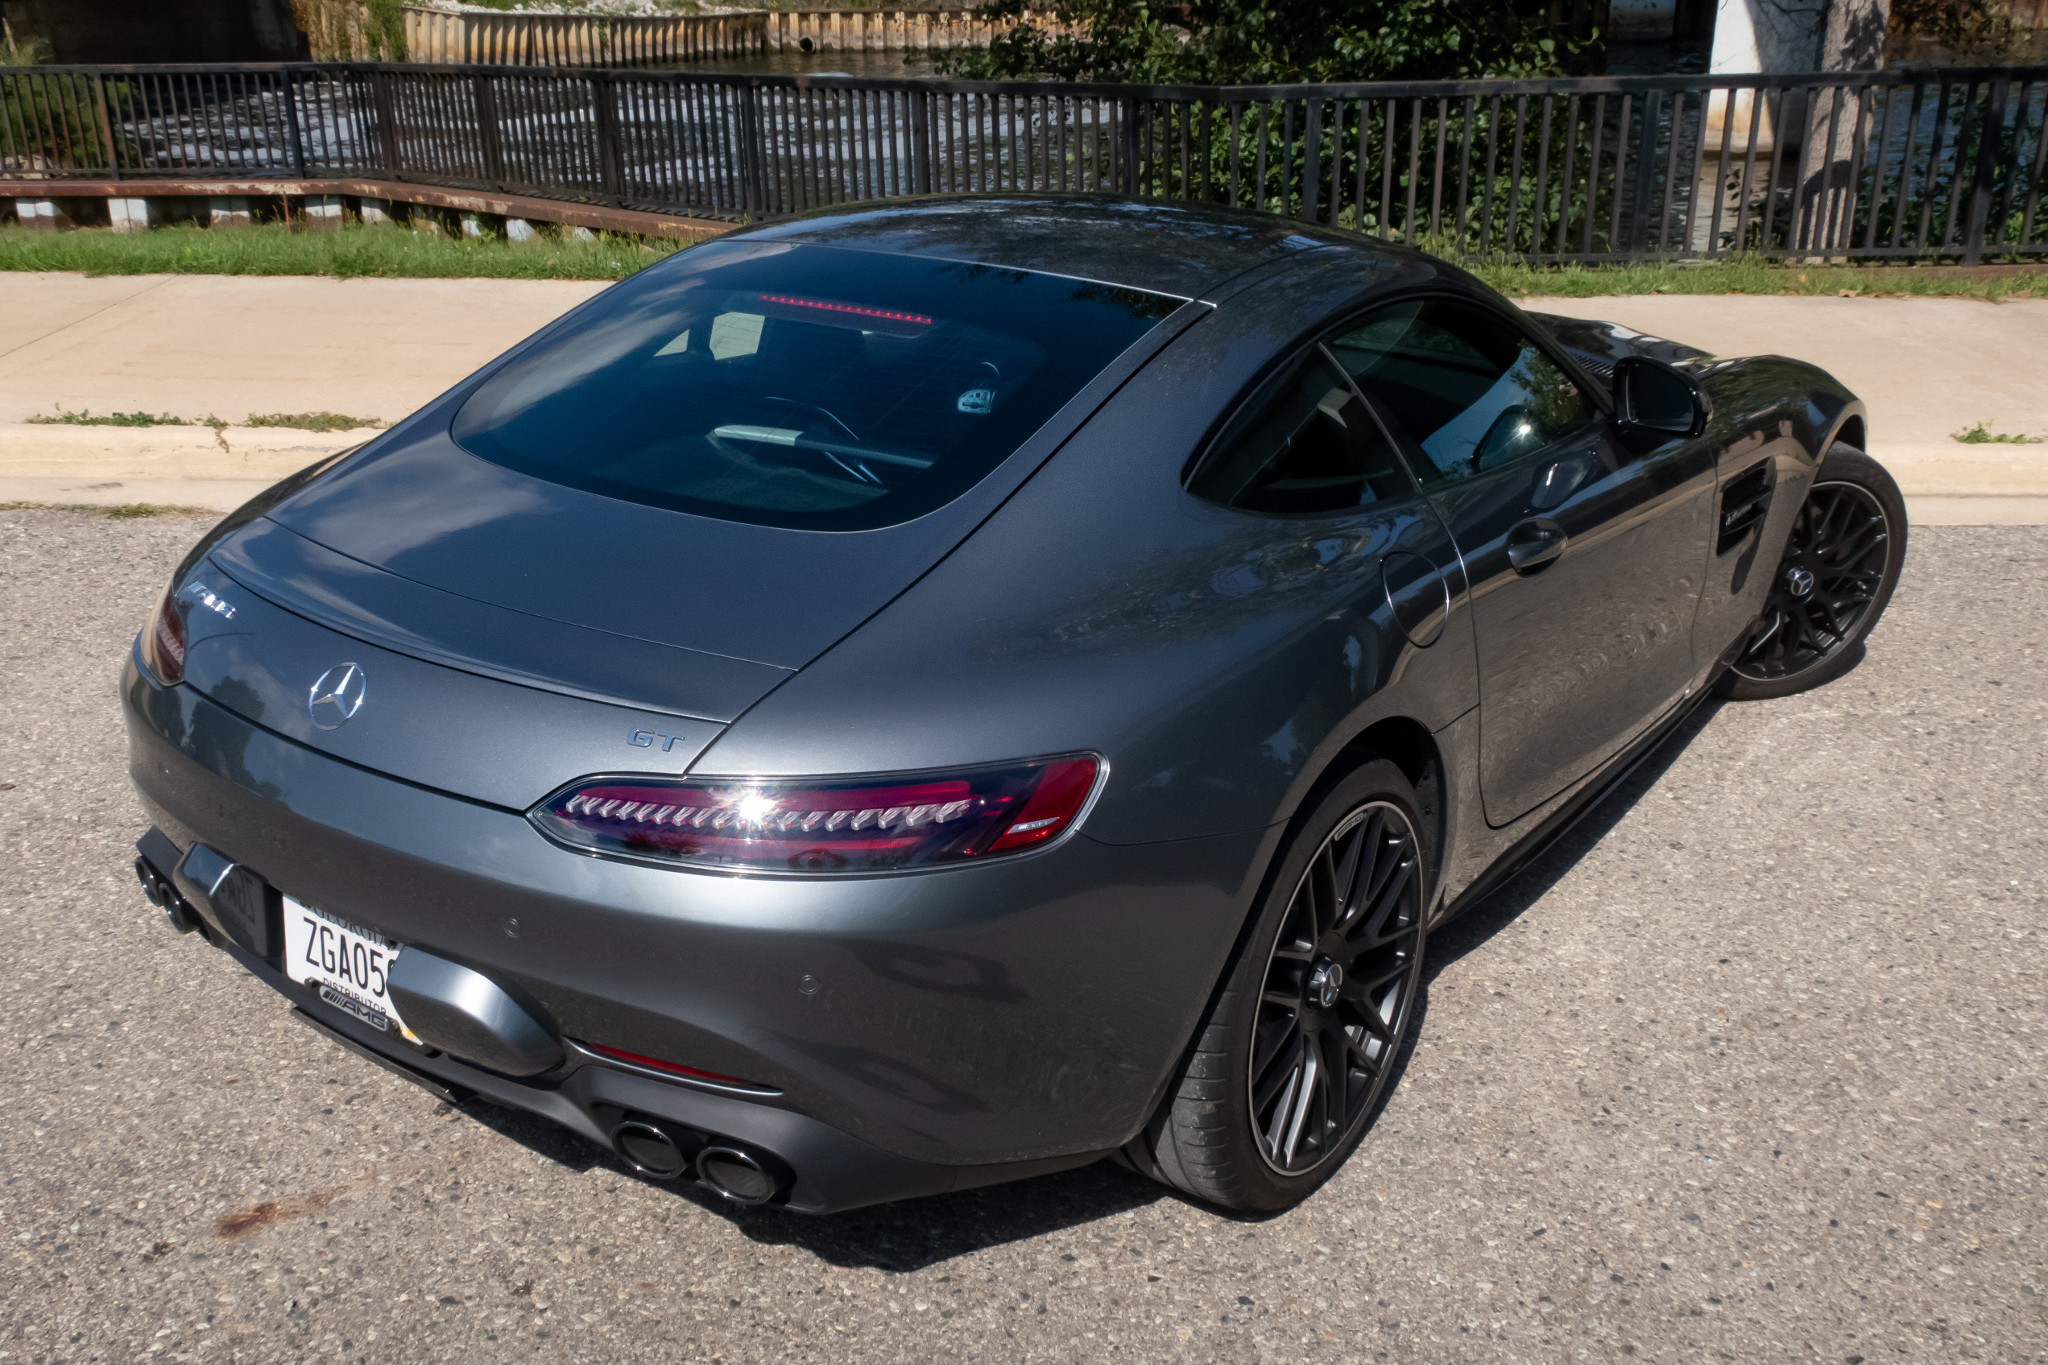 mercedes-benz-amg-gt-coupe-2020-angle--exterior--rear--silver-03.jpg